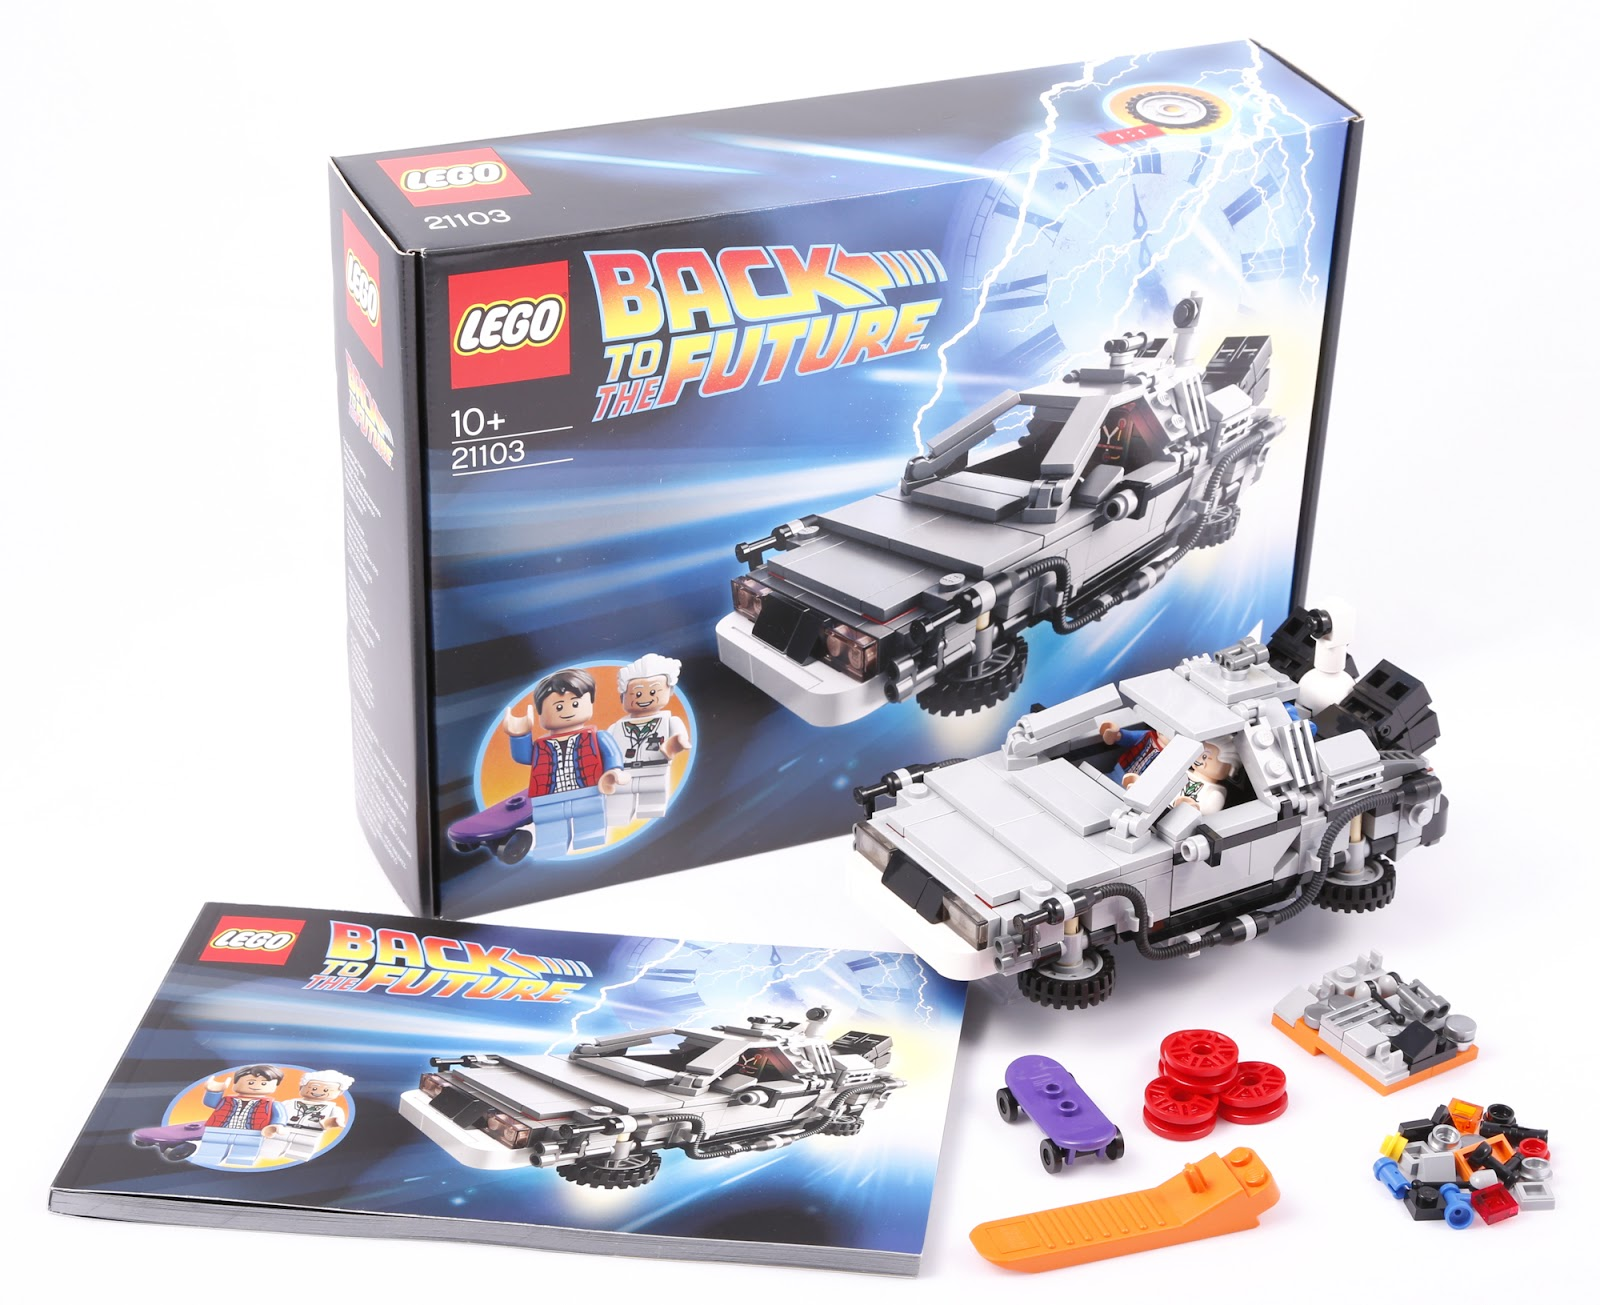 The Brickverse Review 21103 Back To The Future Delorean Time Machine